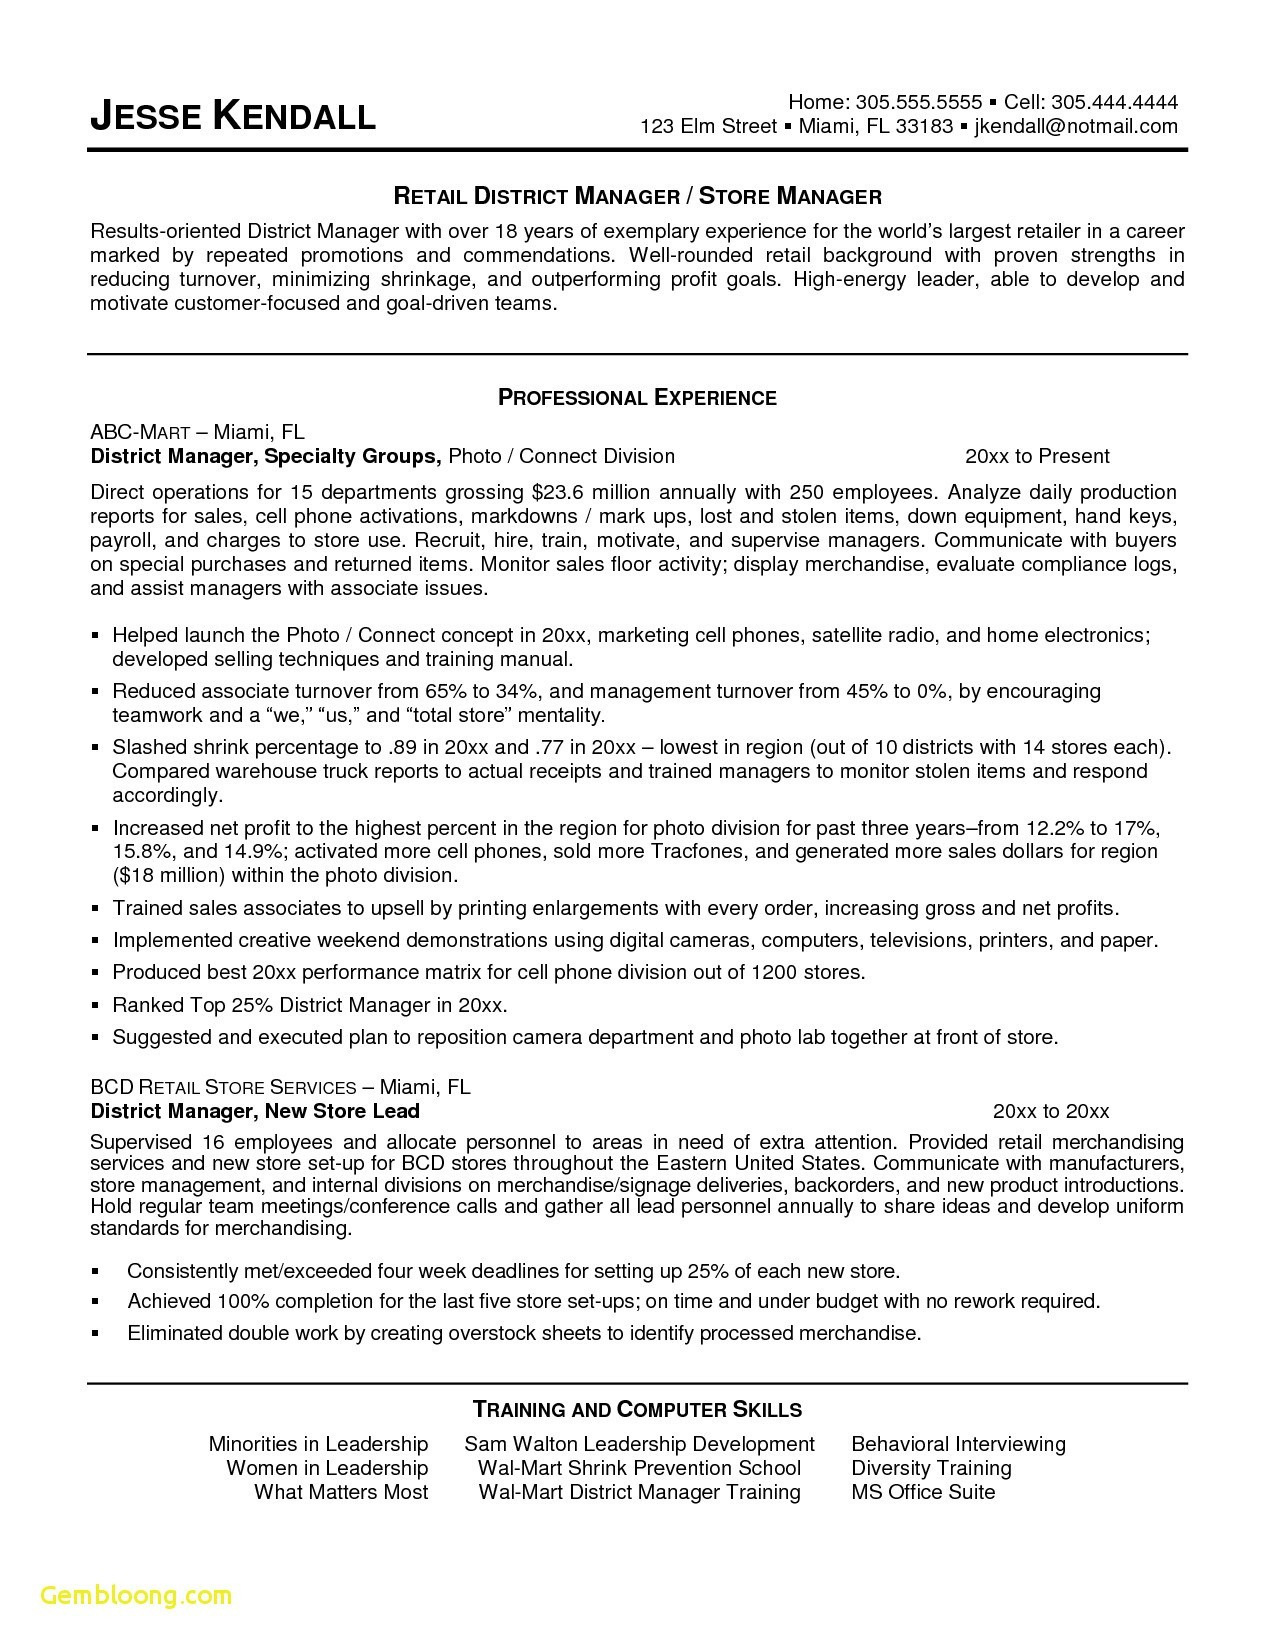 Business Manager Resume - Customer Service Manager Resume Unique Fresh Grapher Resume Sample